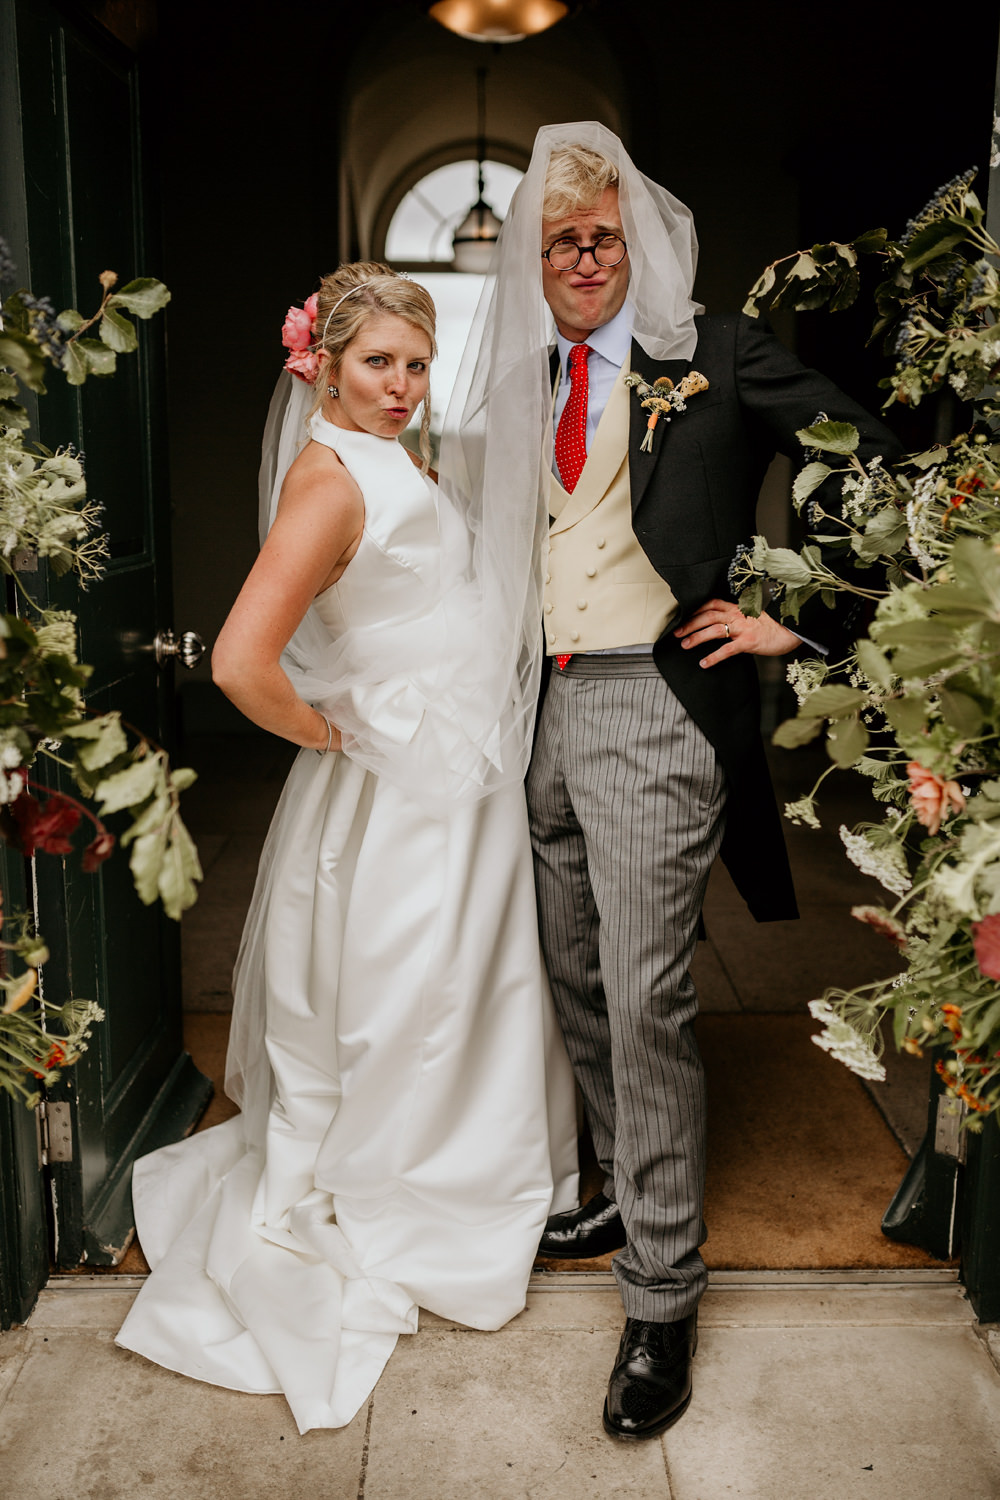 funny bride and groom portraits at The Kennels Goodwood wedding venue by wedding photographer